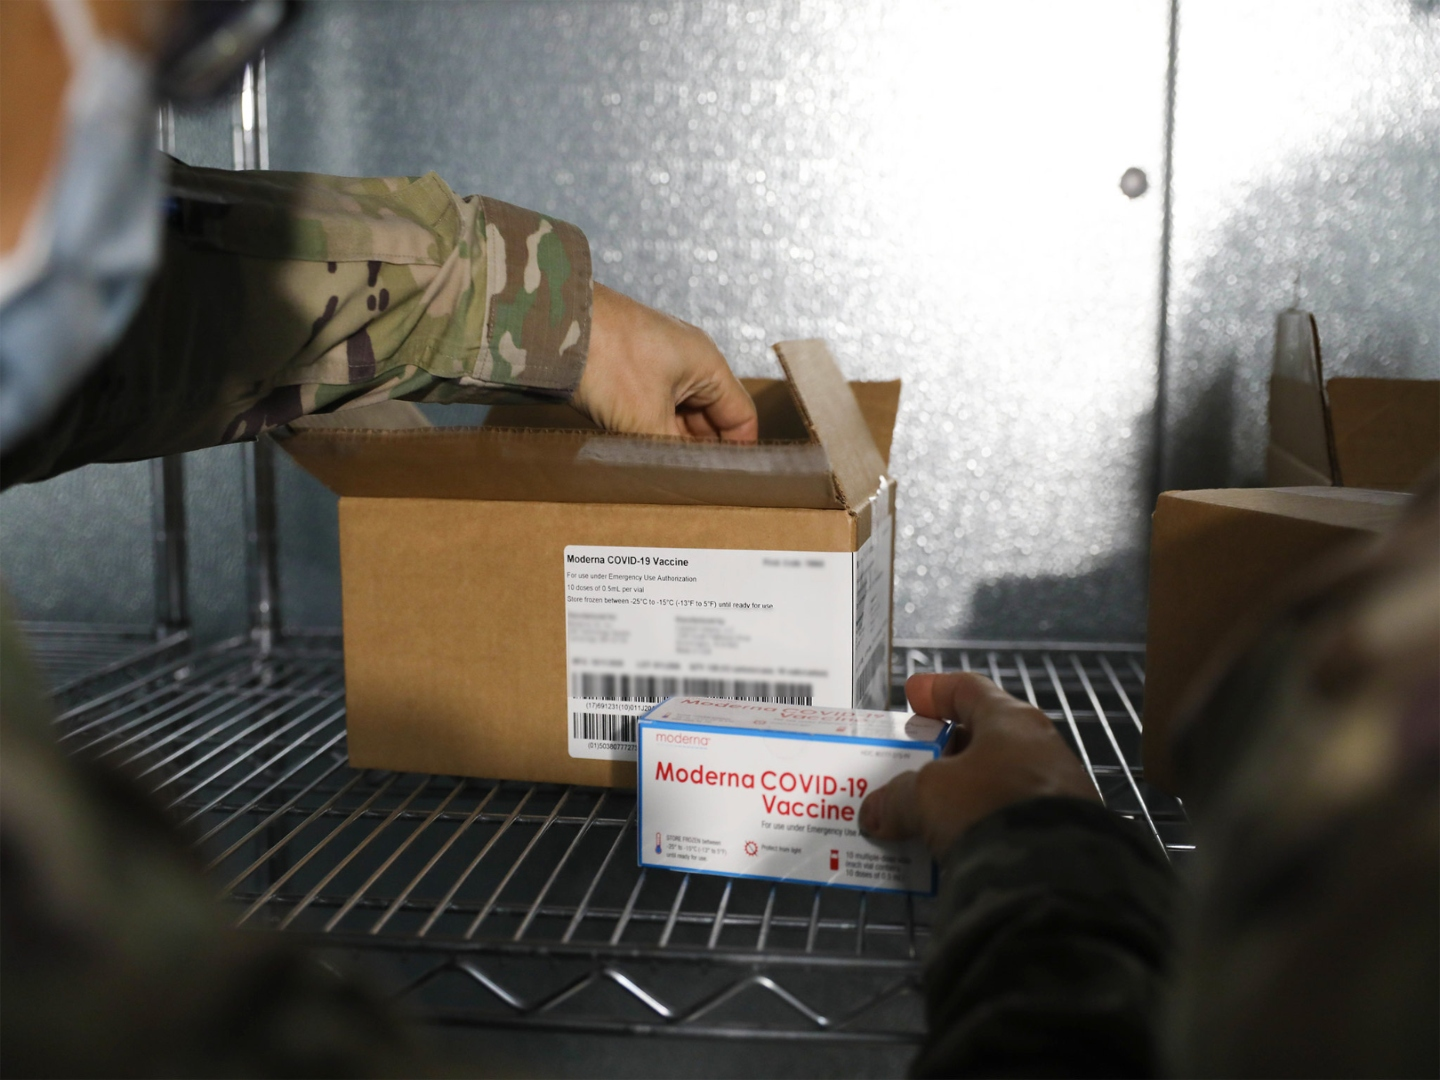 Soldier's hand reaching into box containing COVID-19 Moderna vaccine boxes (U.S. Army photo by Spc. Erin Conway)